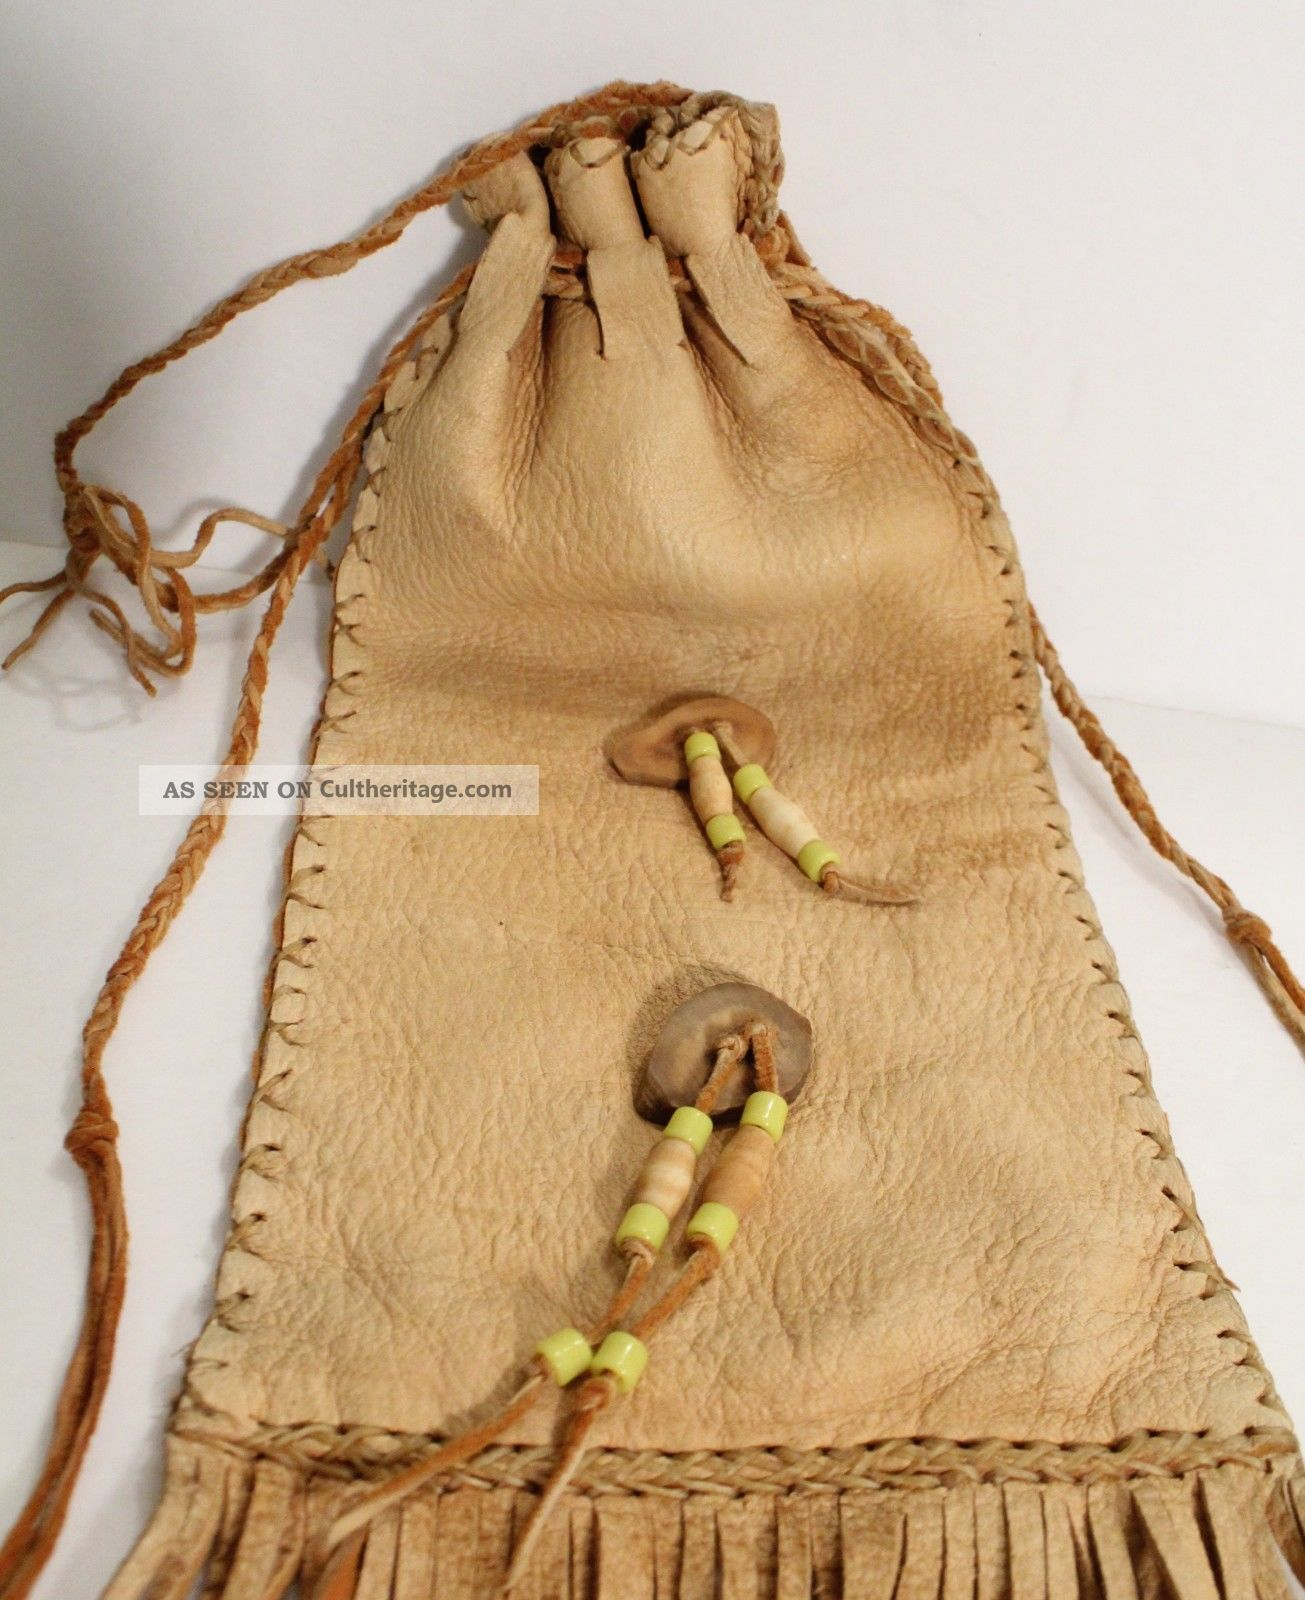 Native American Indian Leather Medicine Bag Tobacco Pouch